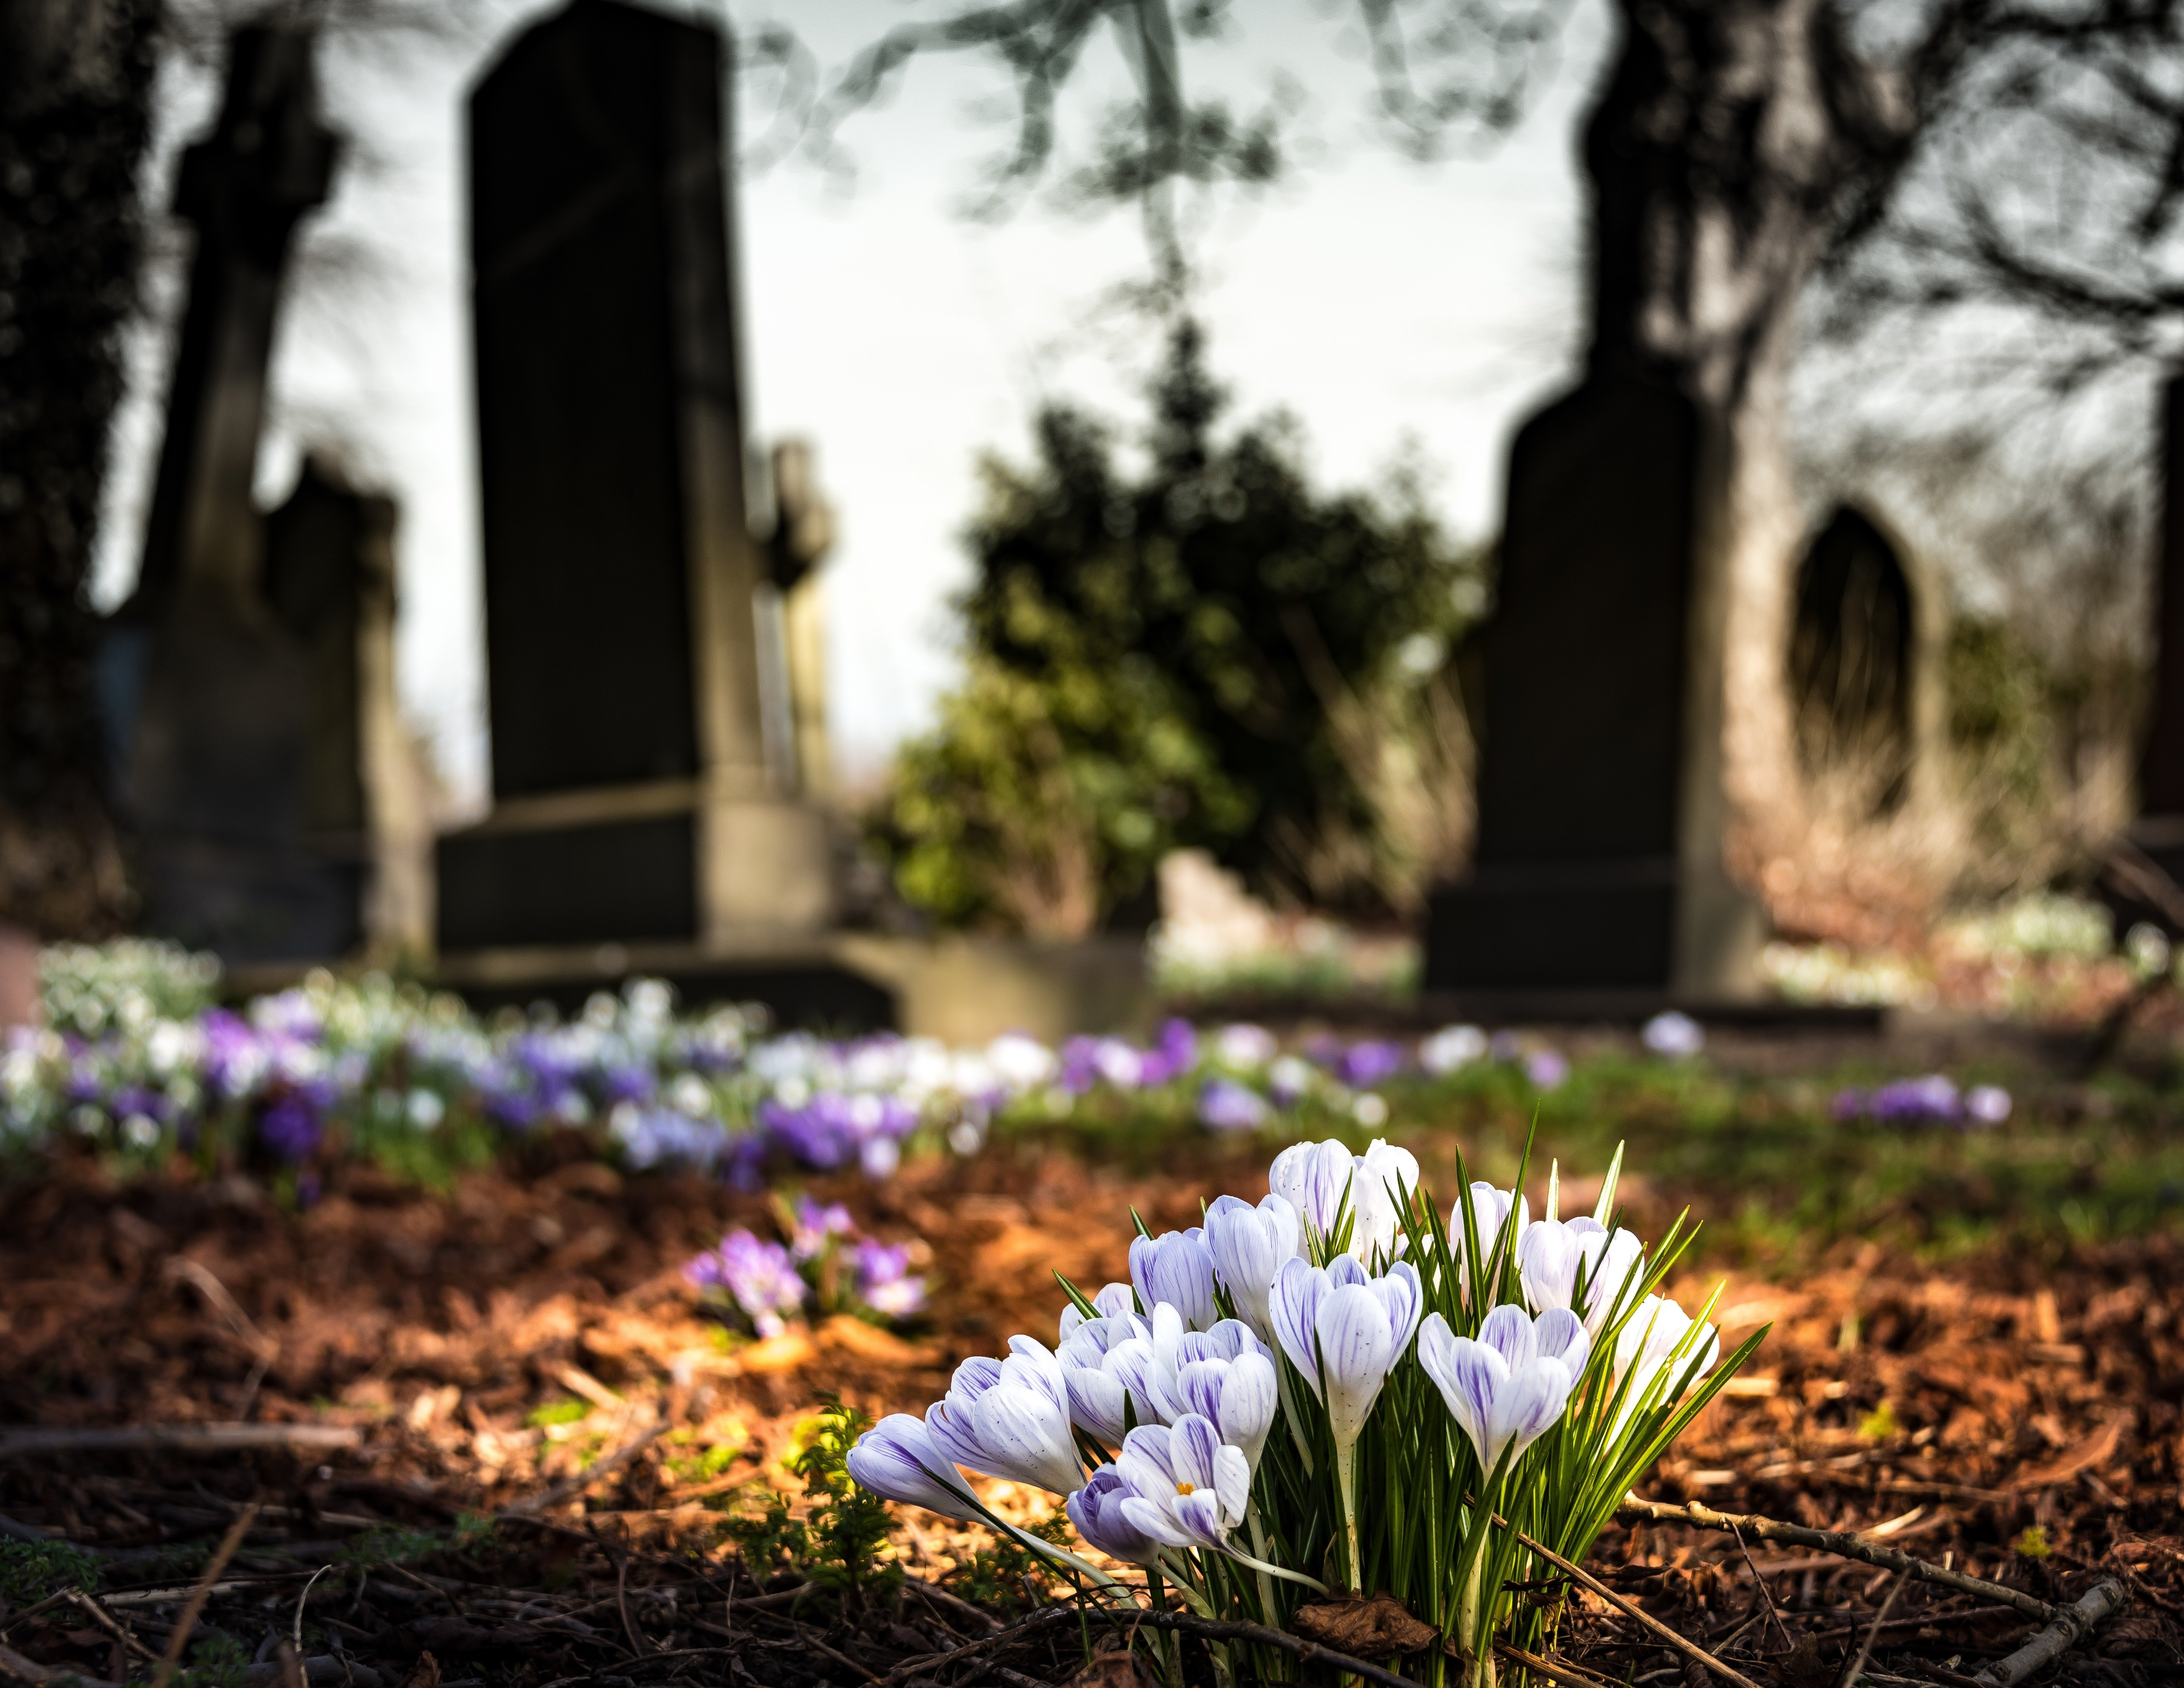 A close-up of flowers growing in a cemetery. | Photo: Pexels.